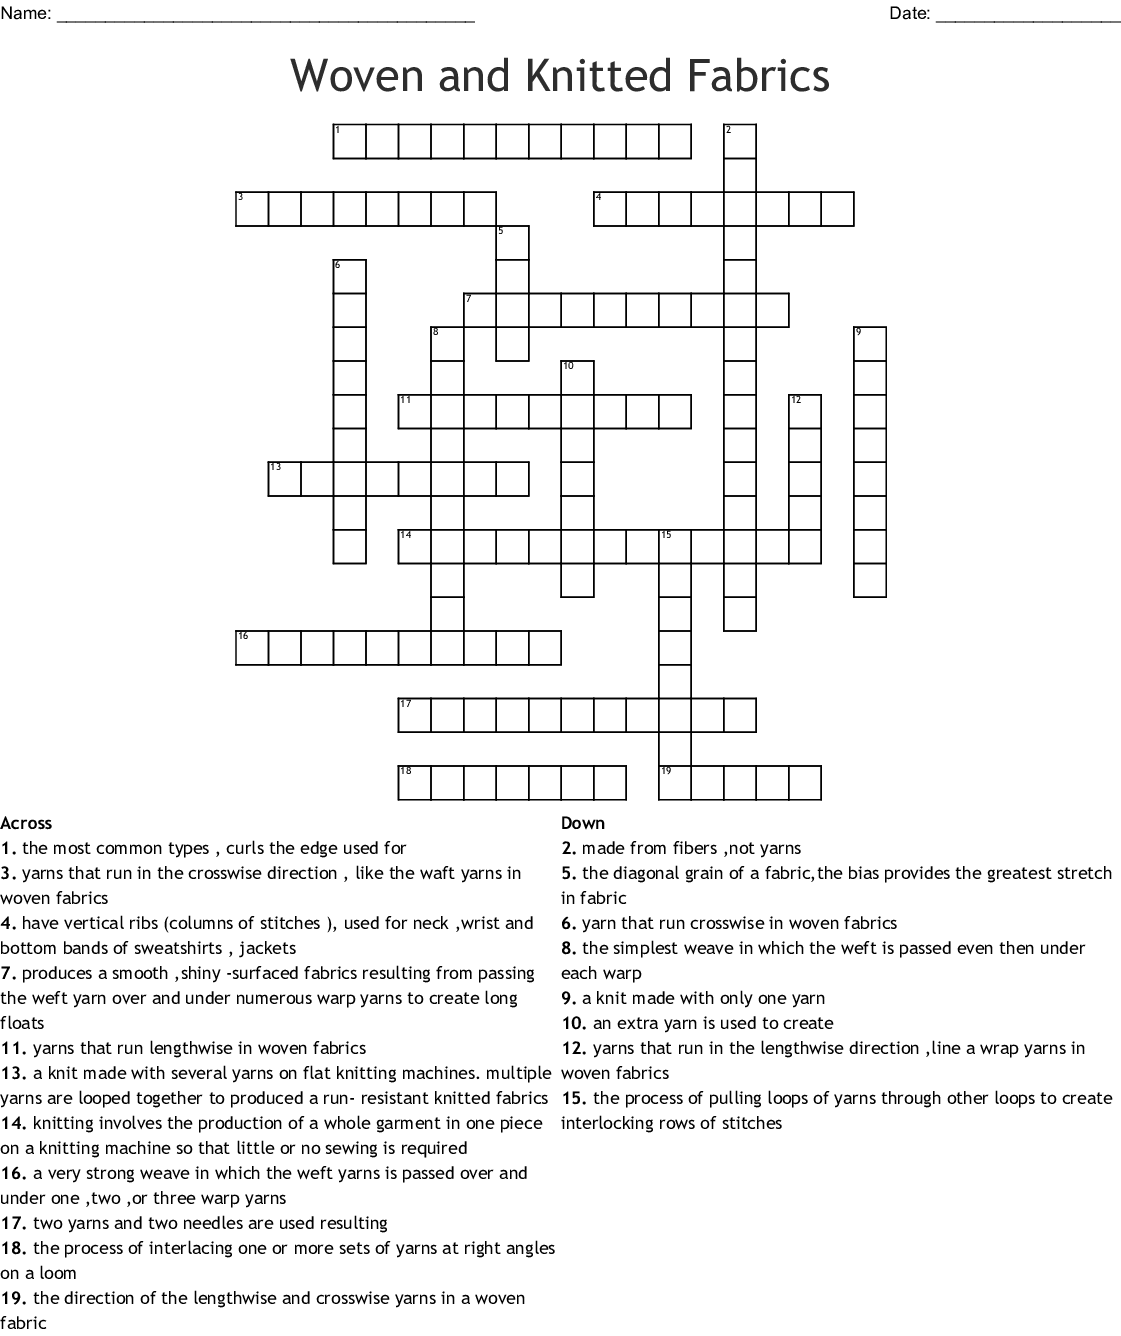 Woven And Knitted Fabrics Crossword